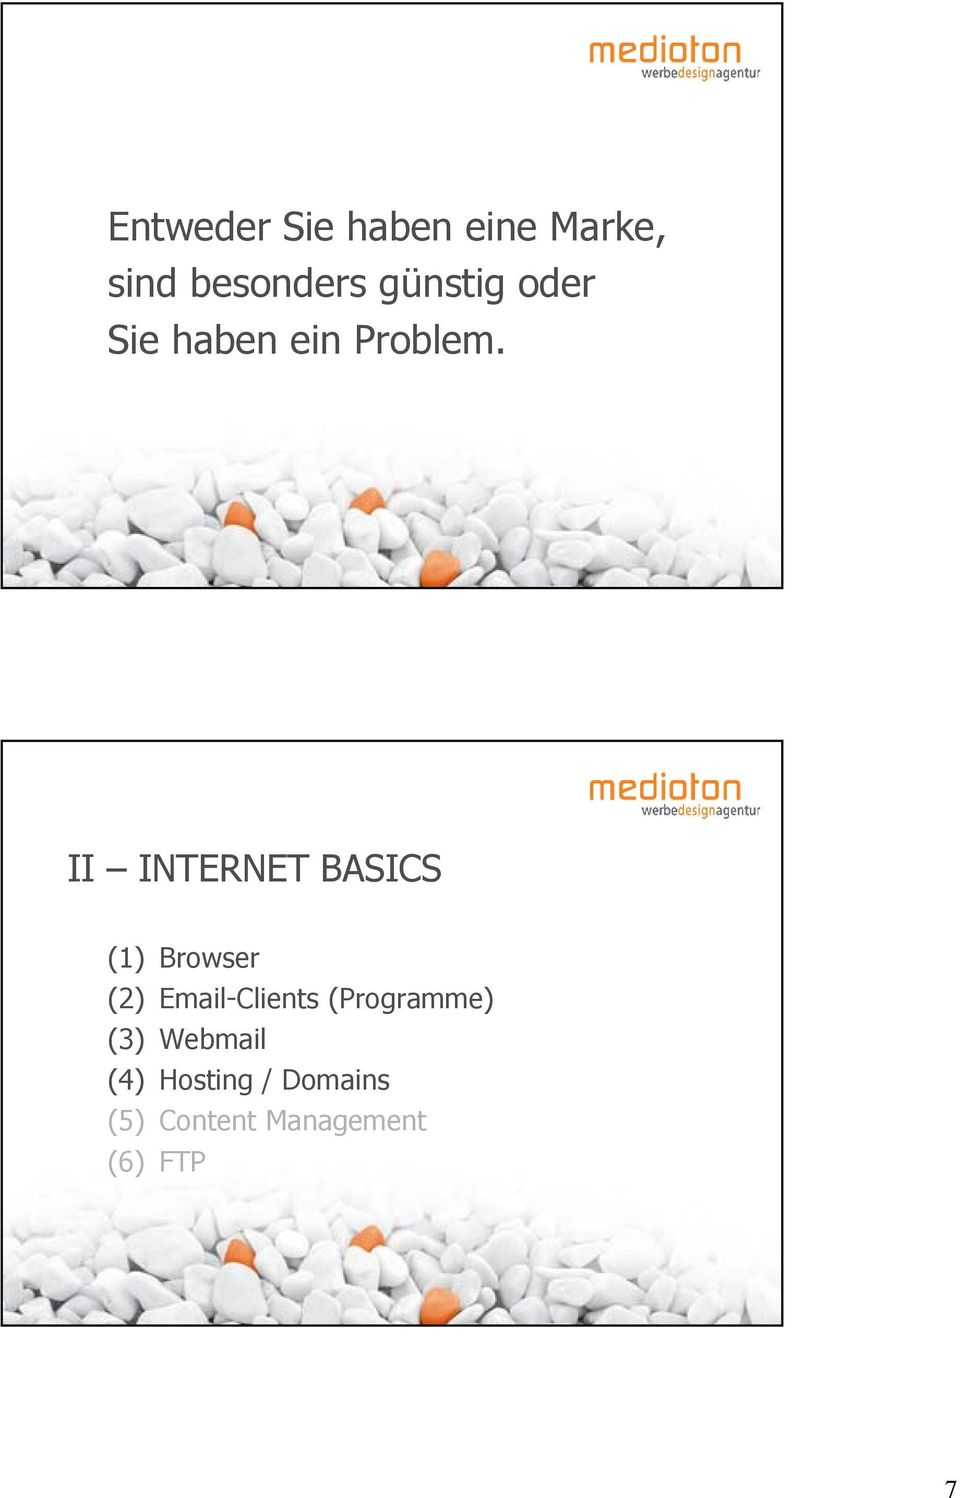 II INTERNET BASICS (1) Browser (2) Email-Clients